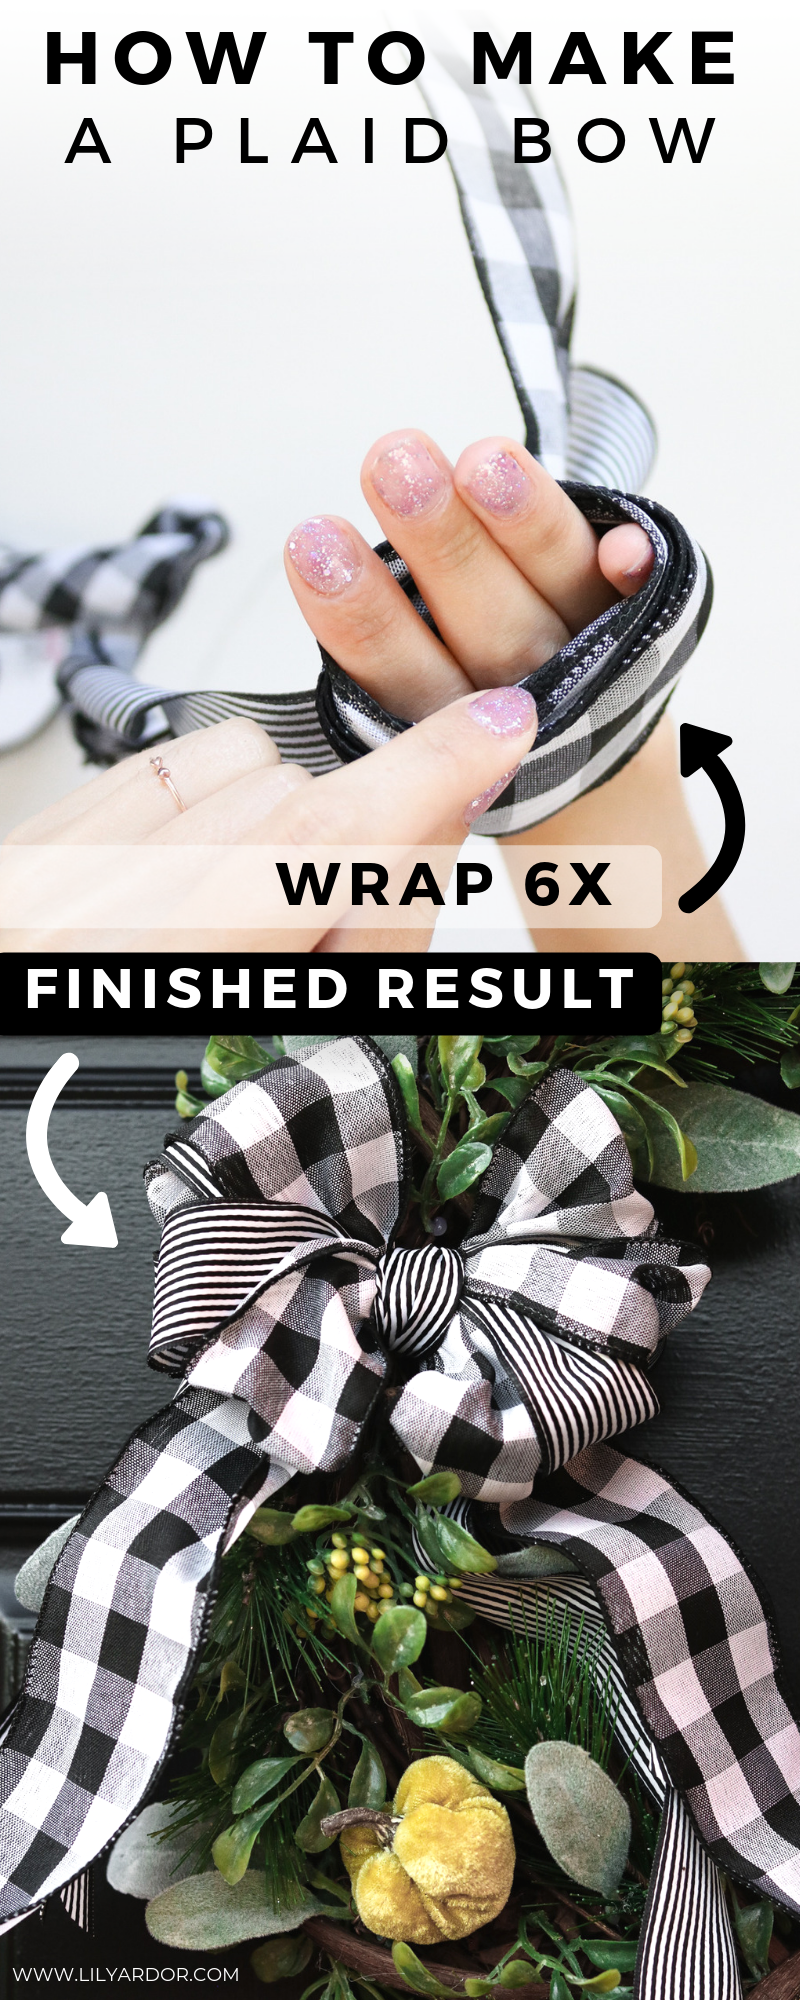 DIY Plaid Bow Wreath #howtomakeabowwithribbon